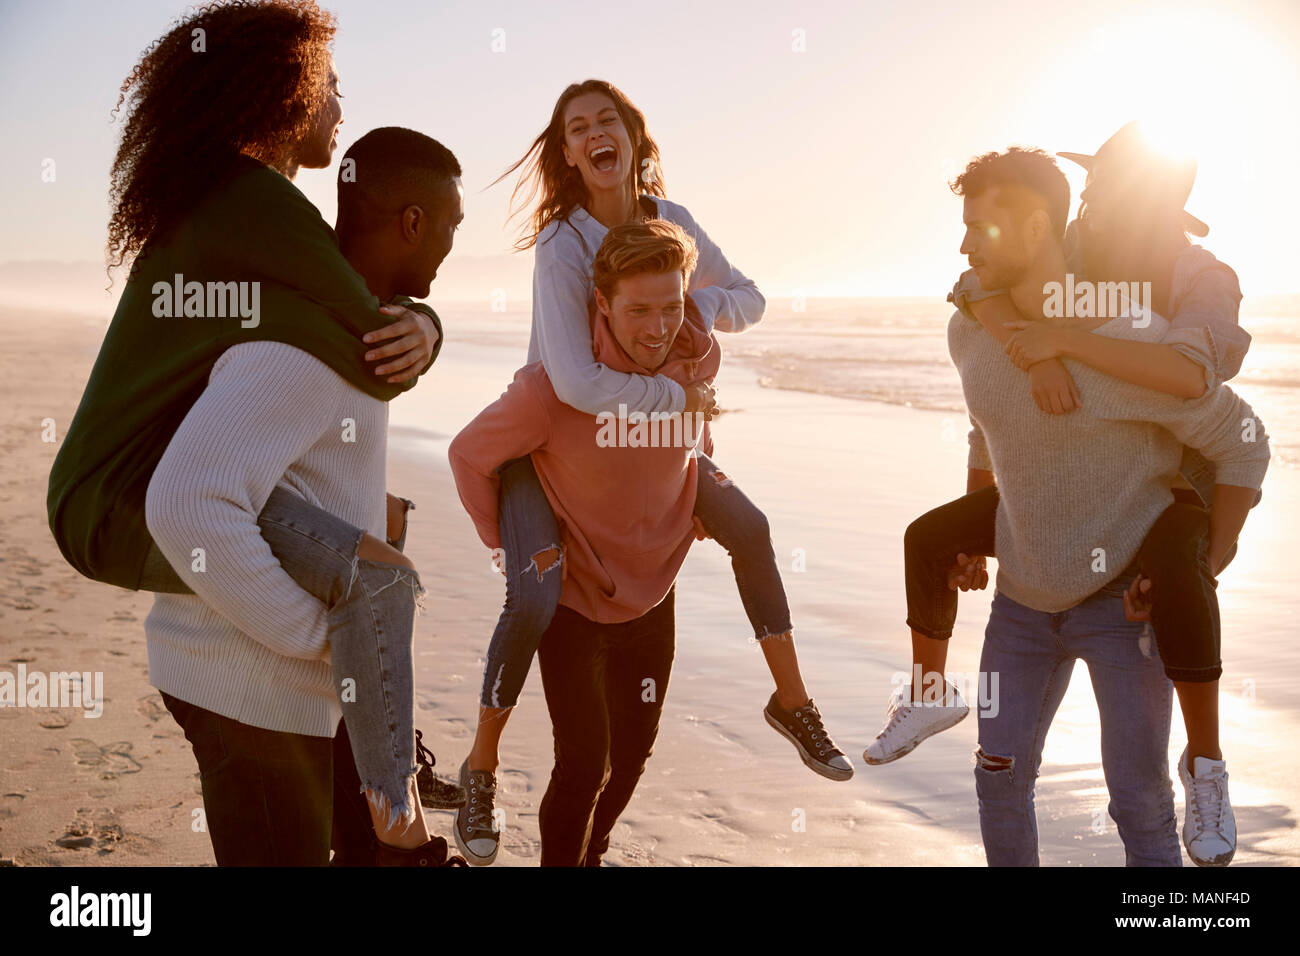 Group Of Friends Having Piggyback Race On Winter Beach Together - Stock Image